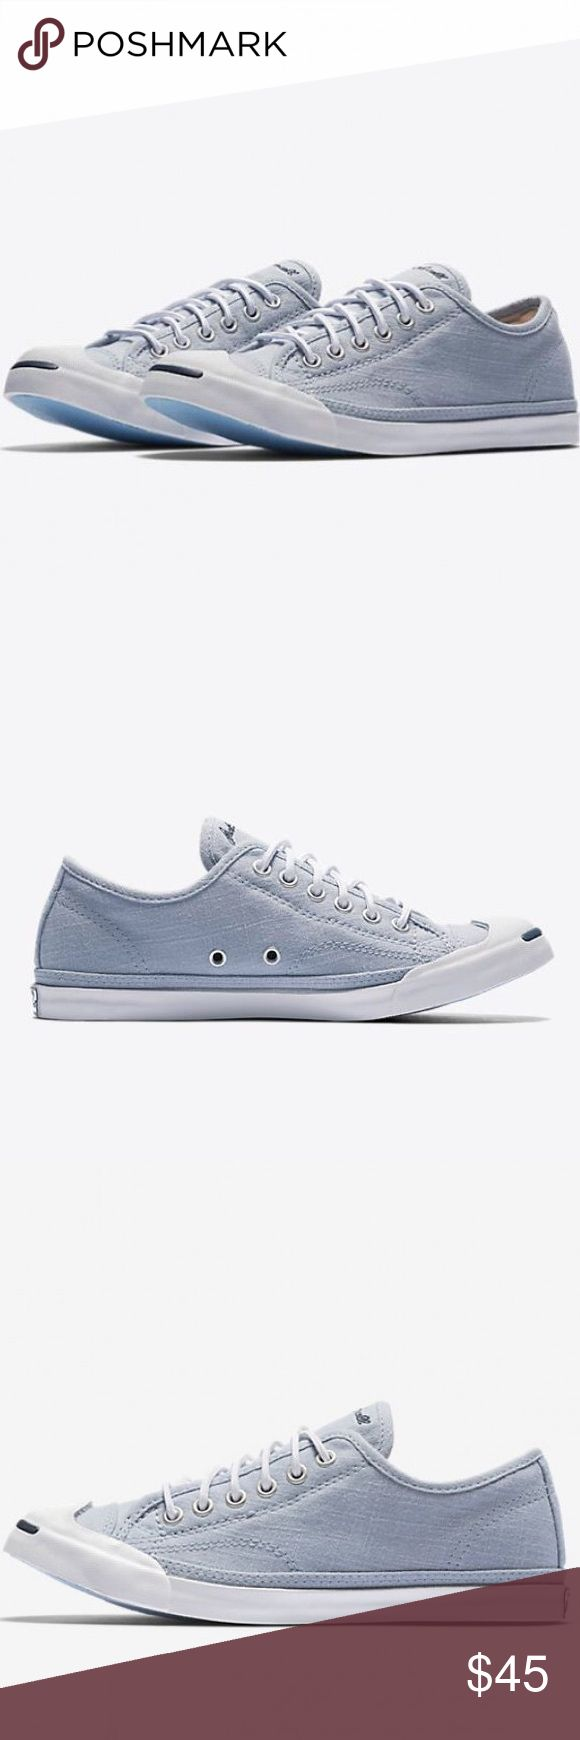 🌴☀️SALE! Converse jack Purcell womens shoes Brand new without box Converse Shoes Sneakers